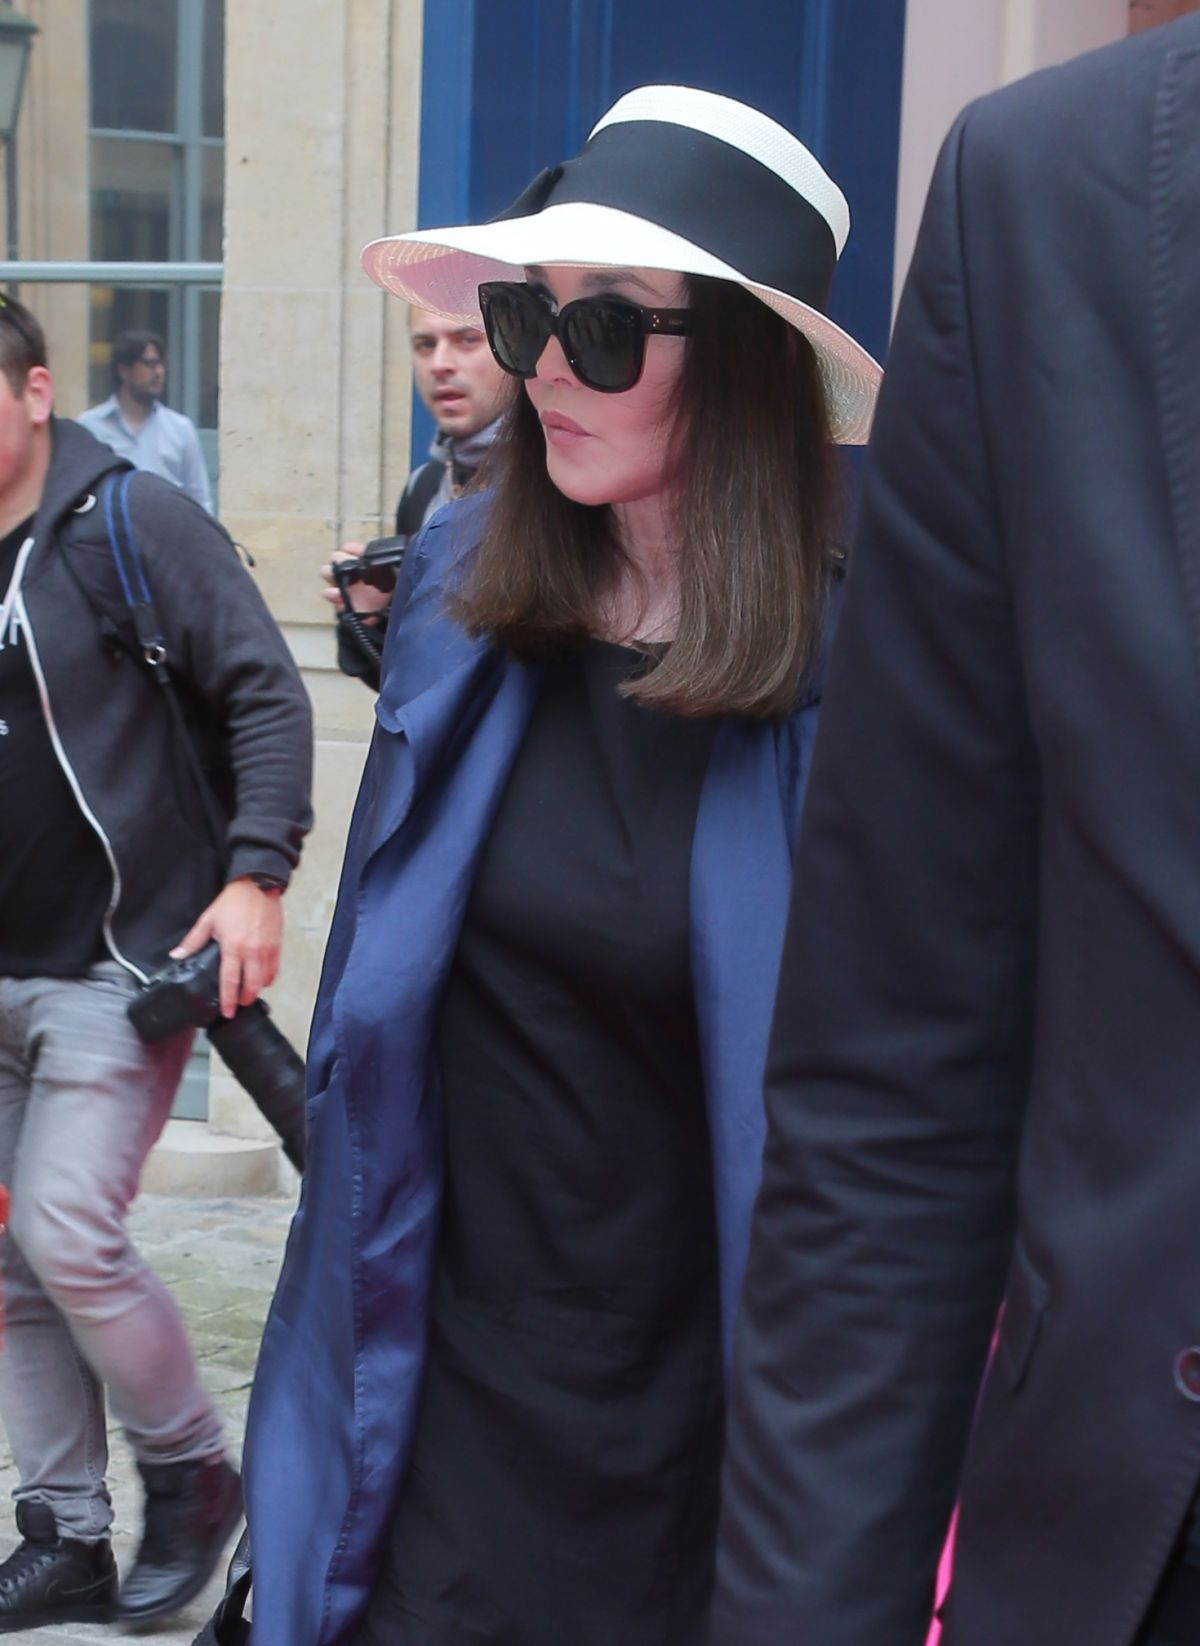 ISABELLE ADJANI at Schiaparelli Haute-couture Fashion Show in Paris 07/04/2016